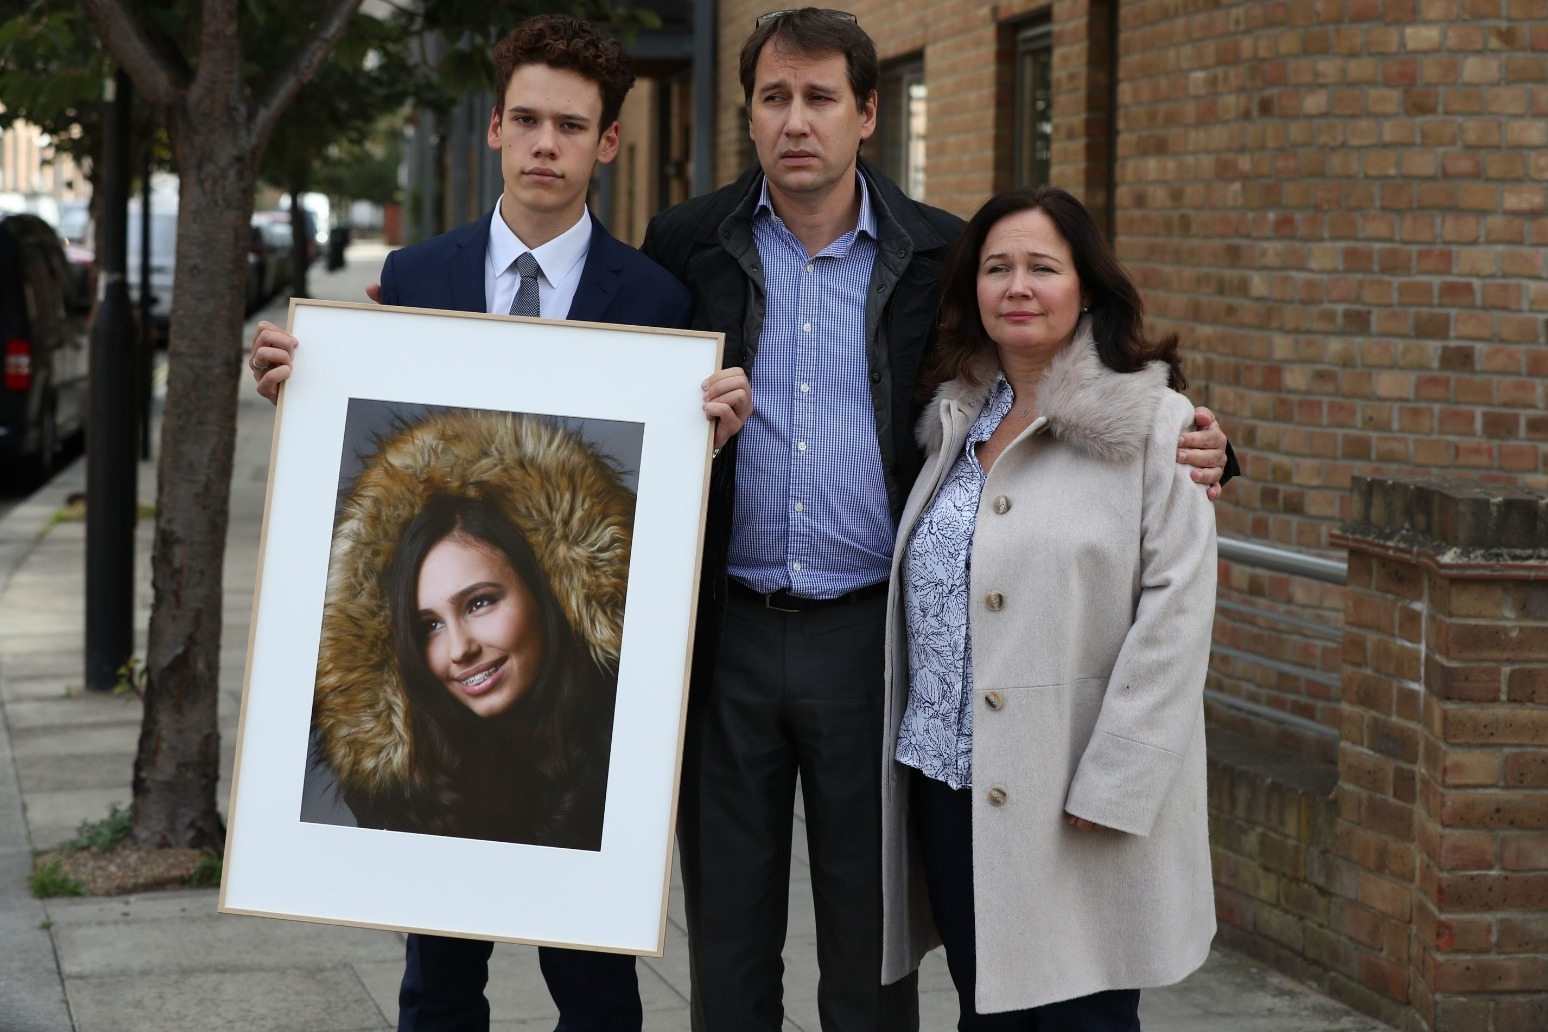 Parents of Natasha Ednan-Laperouse welcome new law in her name